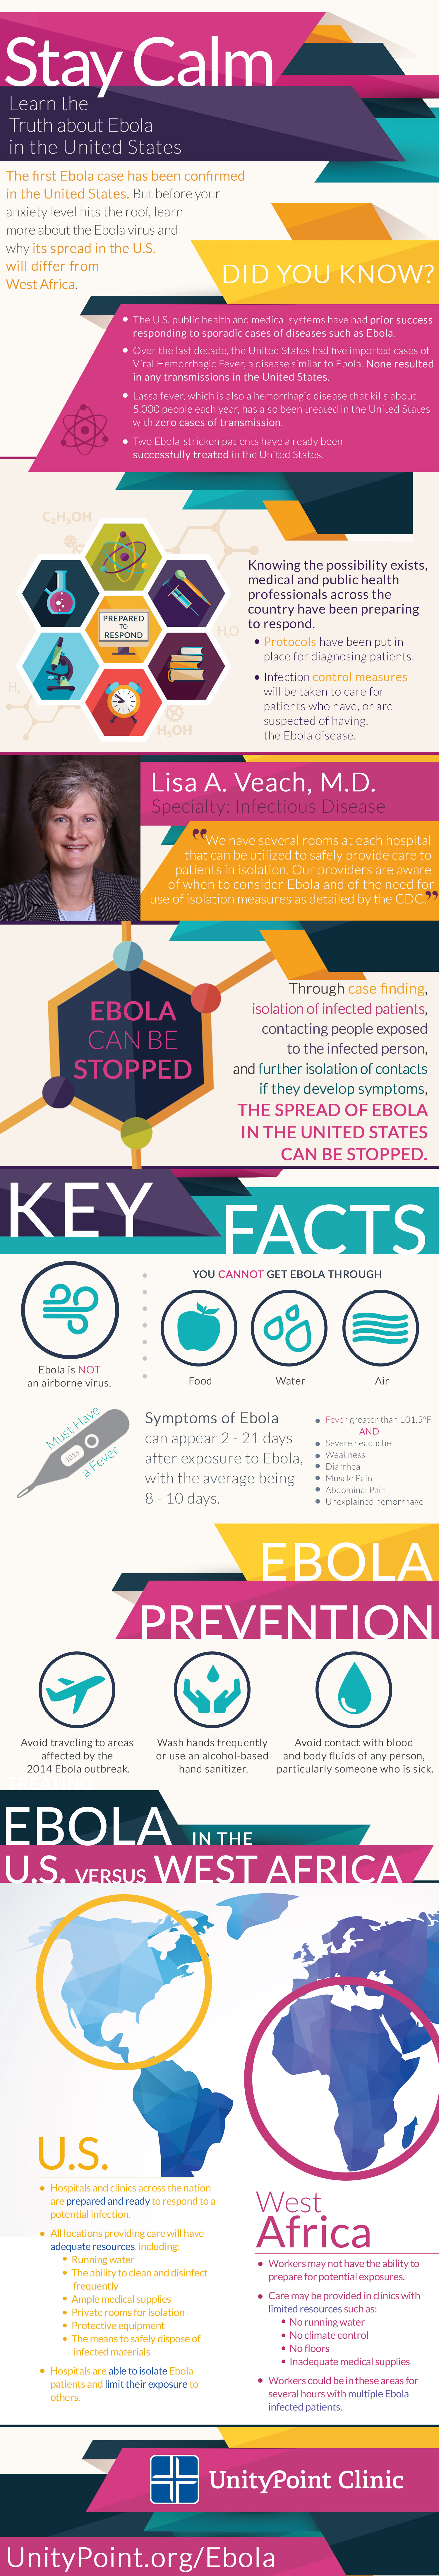 Stay Call Ebola Infographic